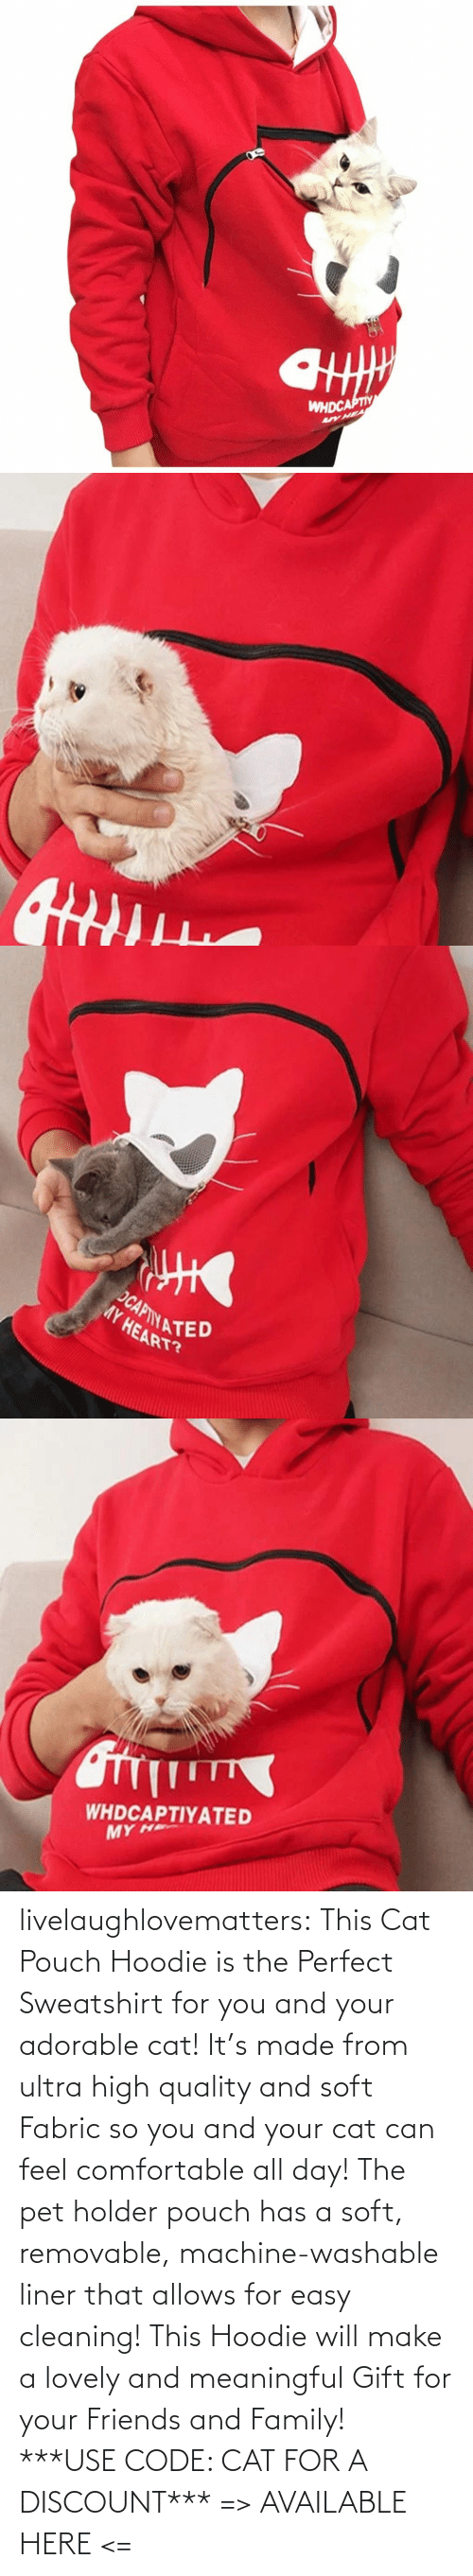 easy: livelaughlovematters: This Cat Pouch Hoodie is the Perfect Sweatshirt for you and your adorable cat! It's made from ultra high quality and soft Fabric so you and your cat can feel comfortable all day!The pet holder pouch has a soft, removable, machine-washable liner that allows for easy cleaning! This Hoodie will make a lovely and meaningful Gift for your Friends and Family! ***USE CODE: CATFOR A DISCOUNT*** => AVAILABLE HERE <=